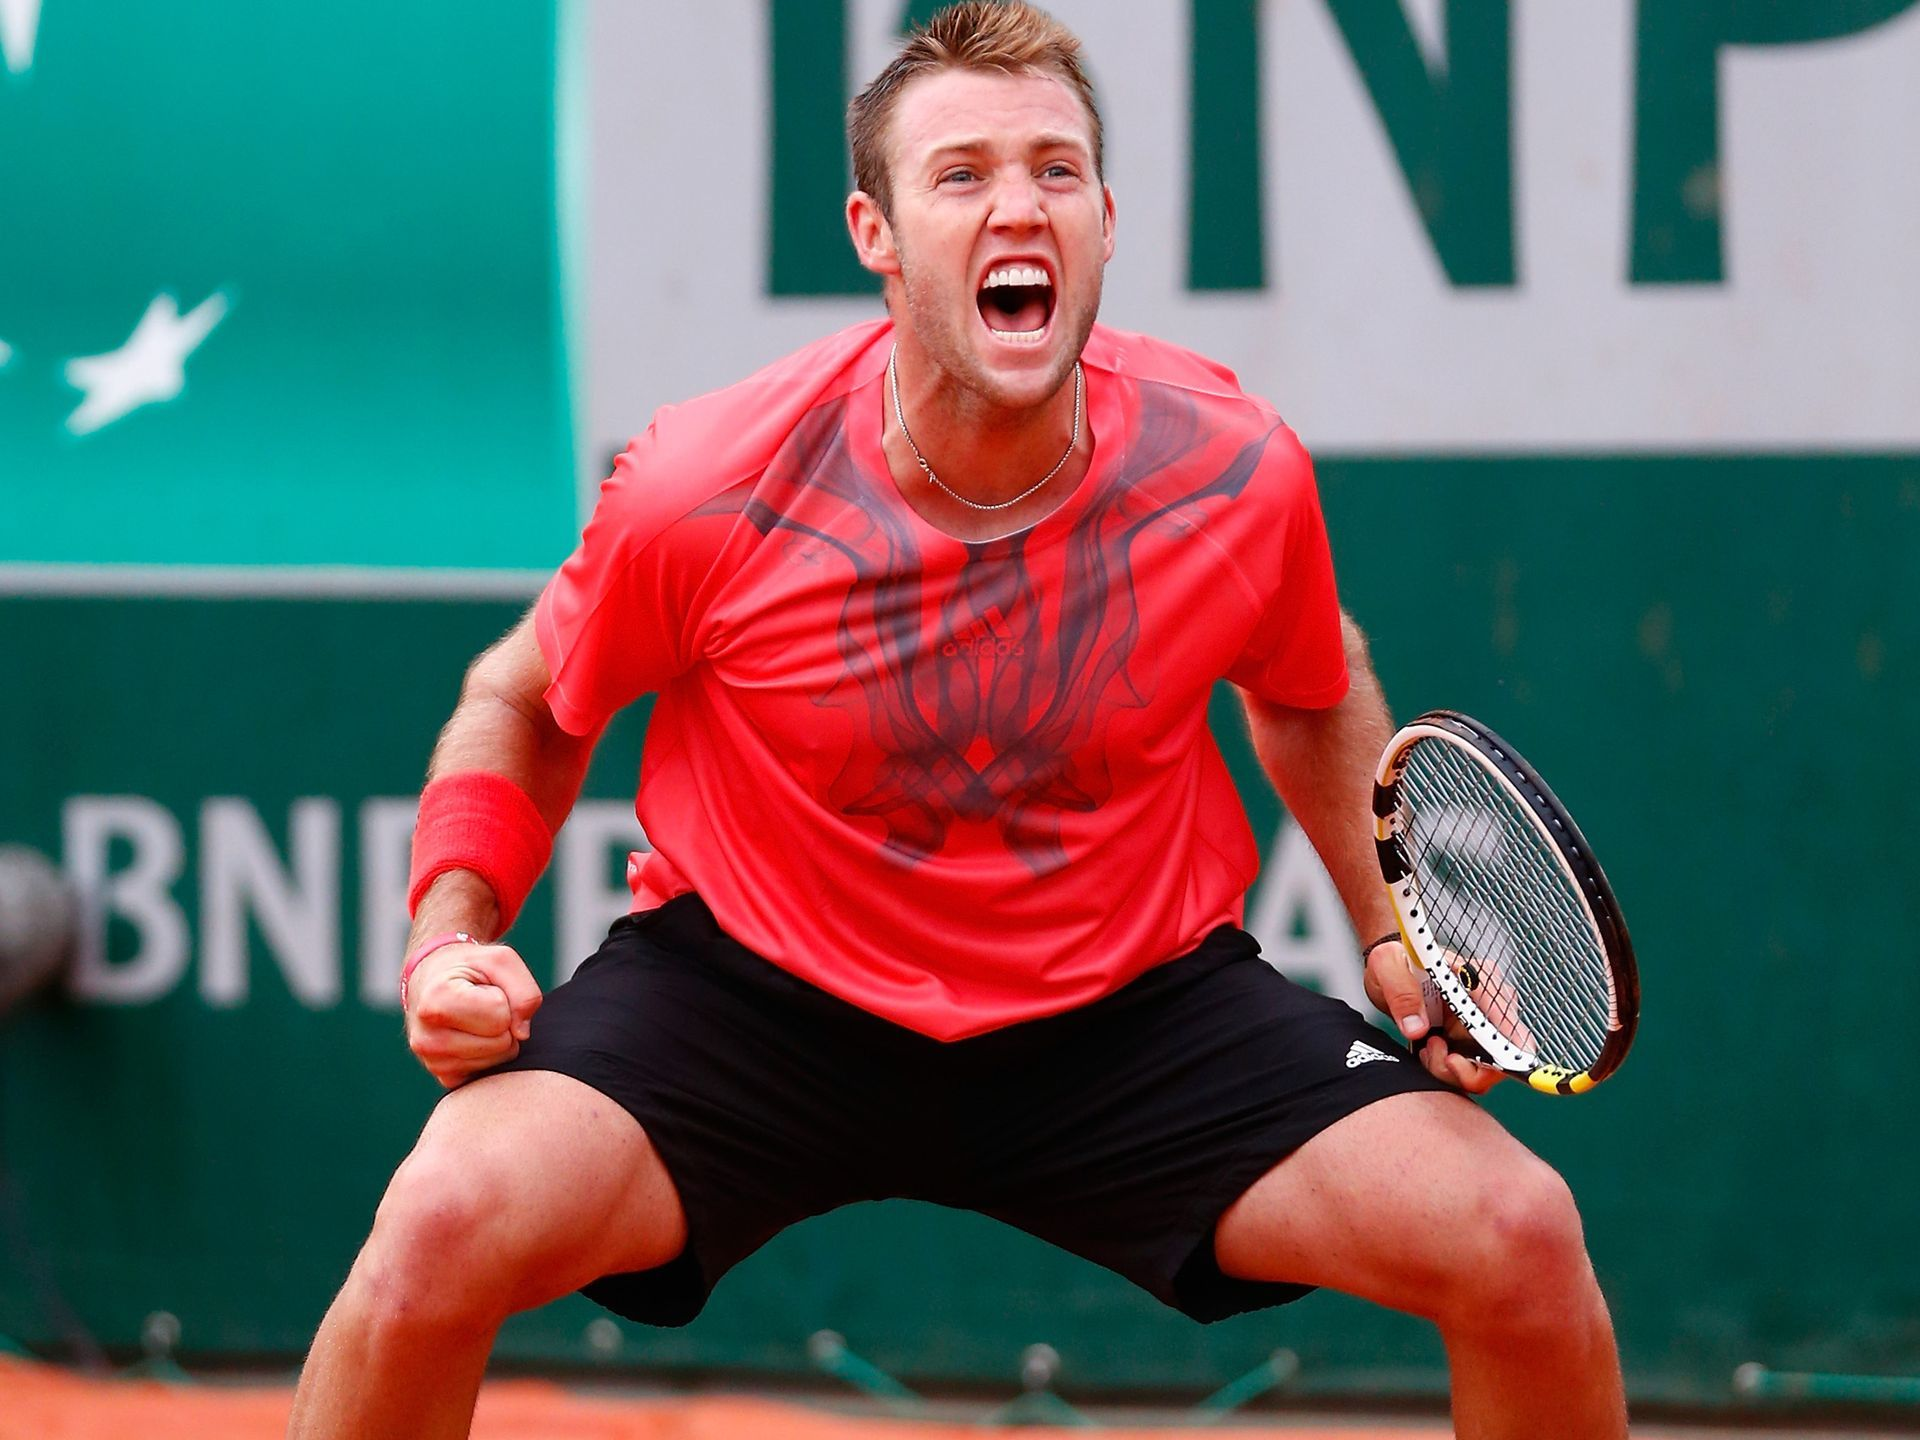 Jack Sock of the United States celebrates match point against Pablo Caerreno Busta.  Julian Finney, Getty Images